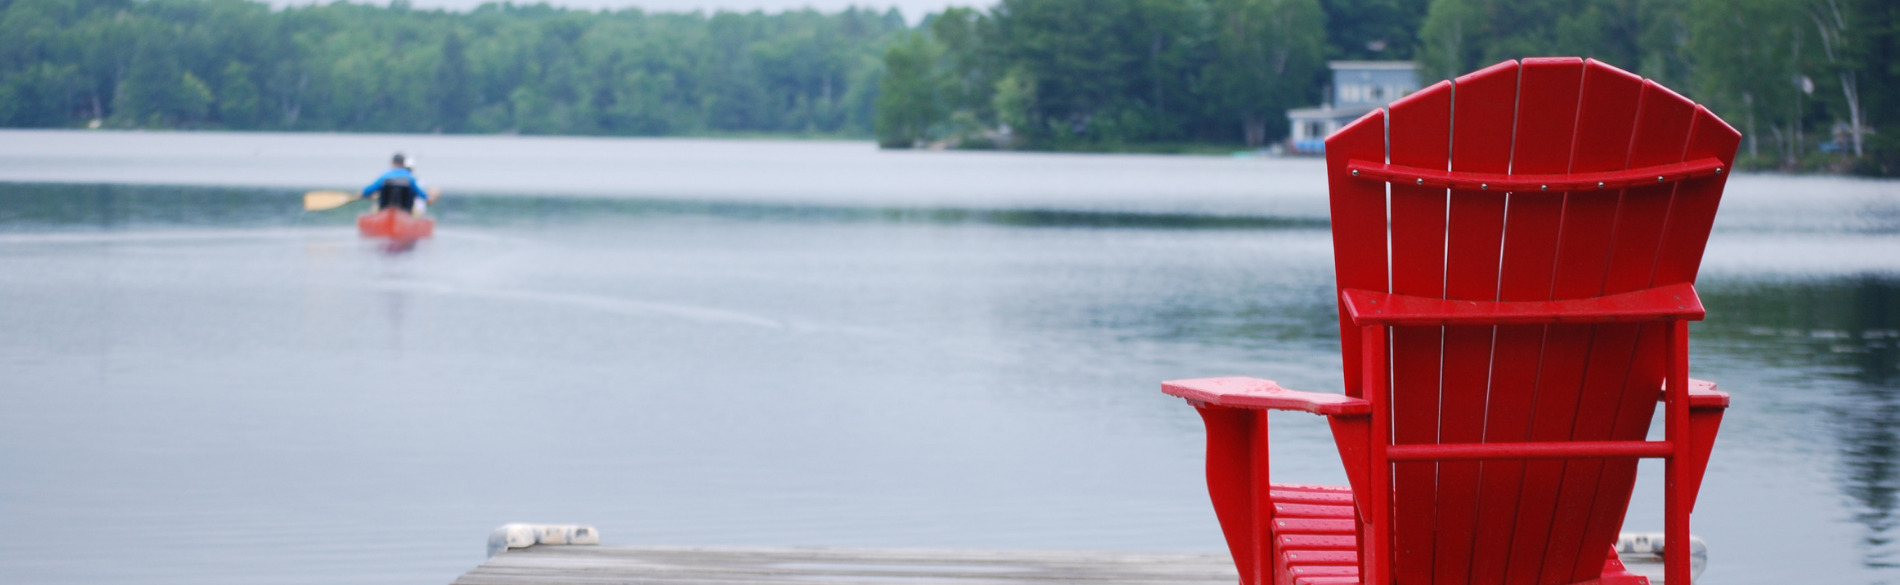 empty red muskoka chair on a dock facing a lake